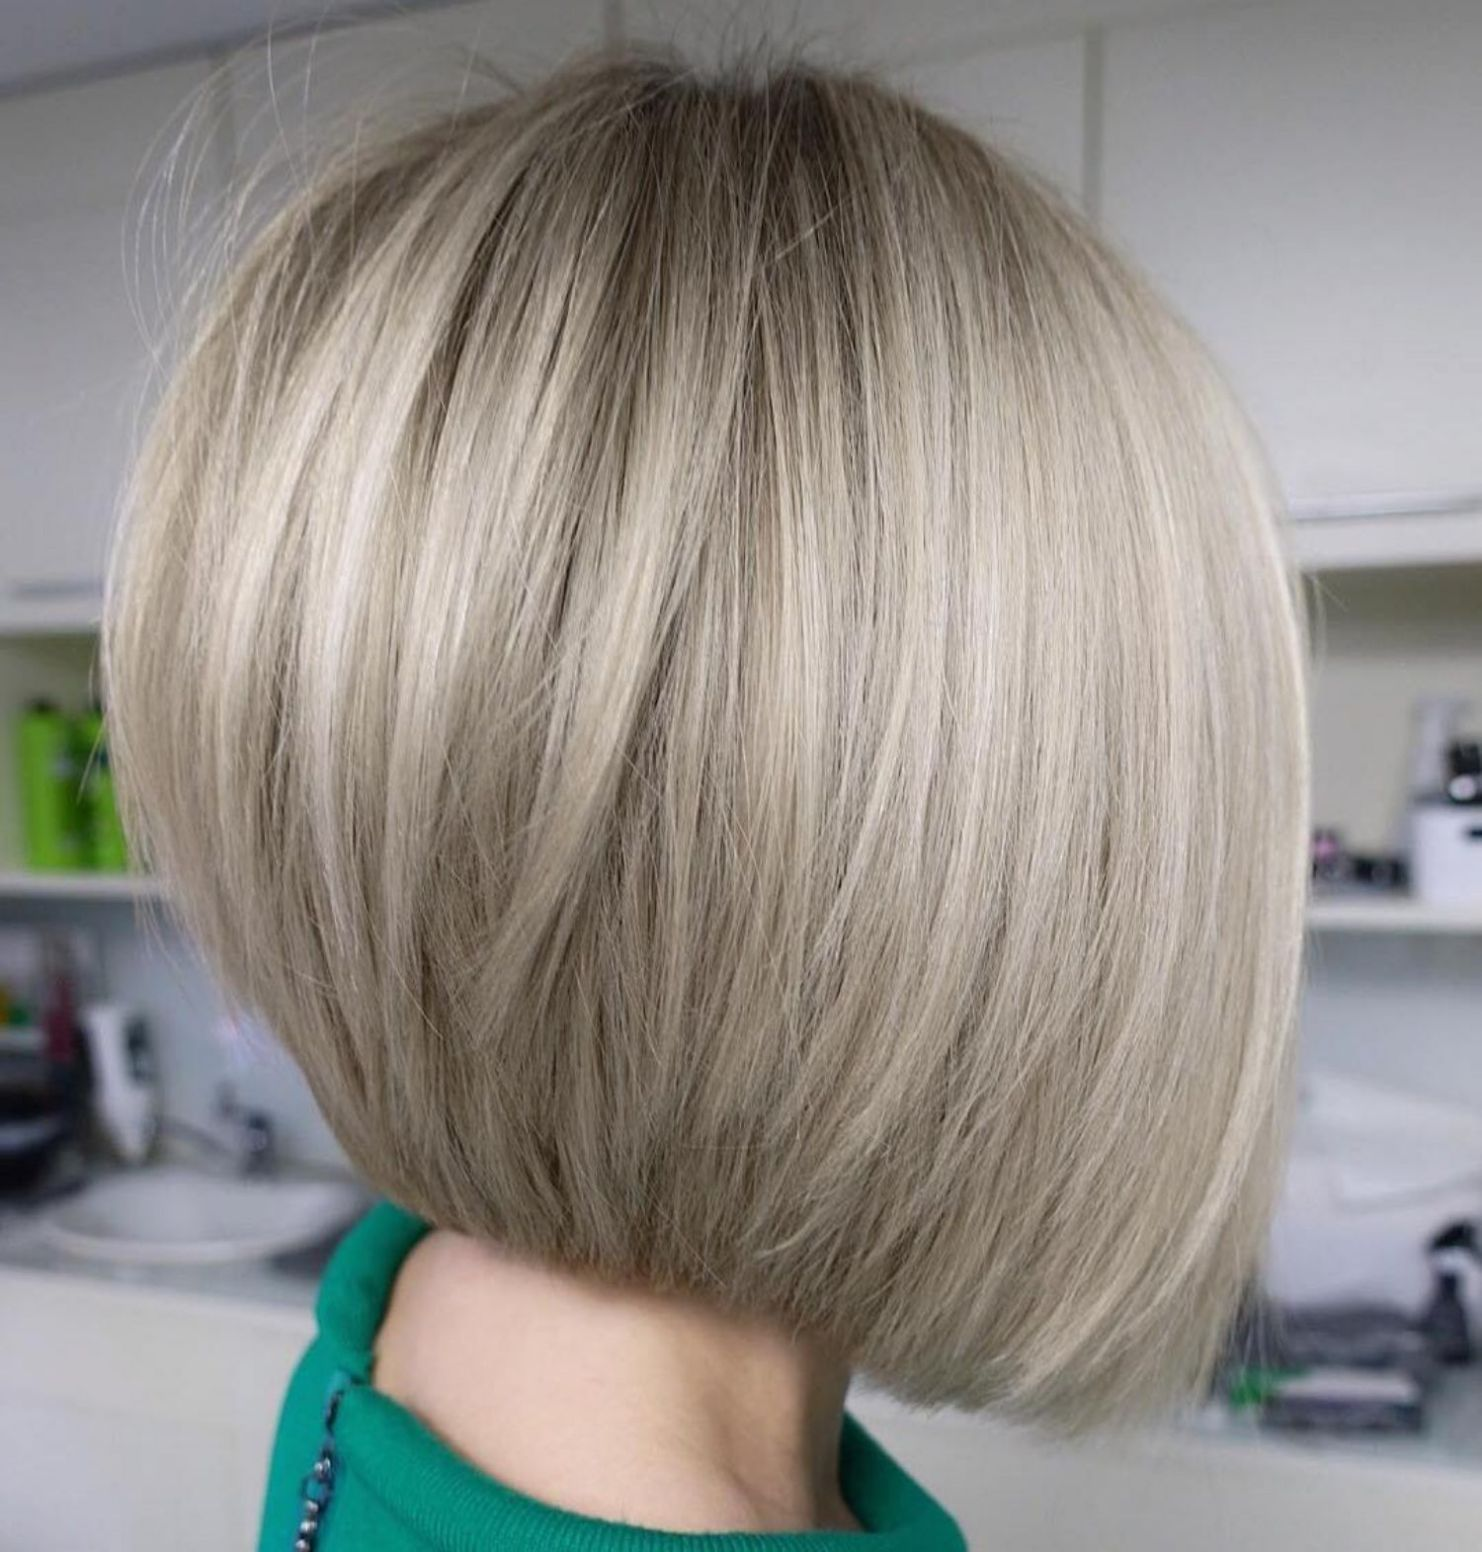 60 Best Short Bob Haircuts and Hairstyles for Women | Short bob haircuts,  Blonde bob hairstyles, Short bob hairstyles